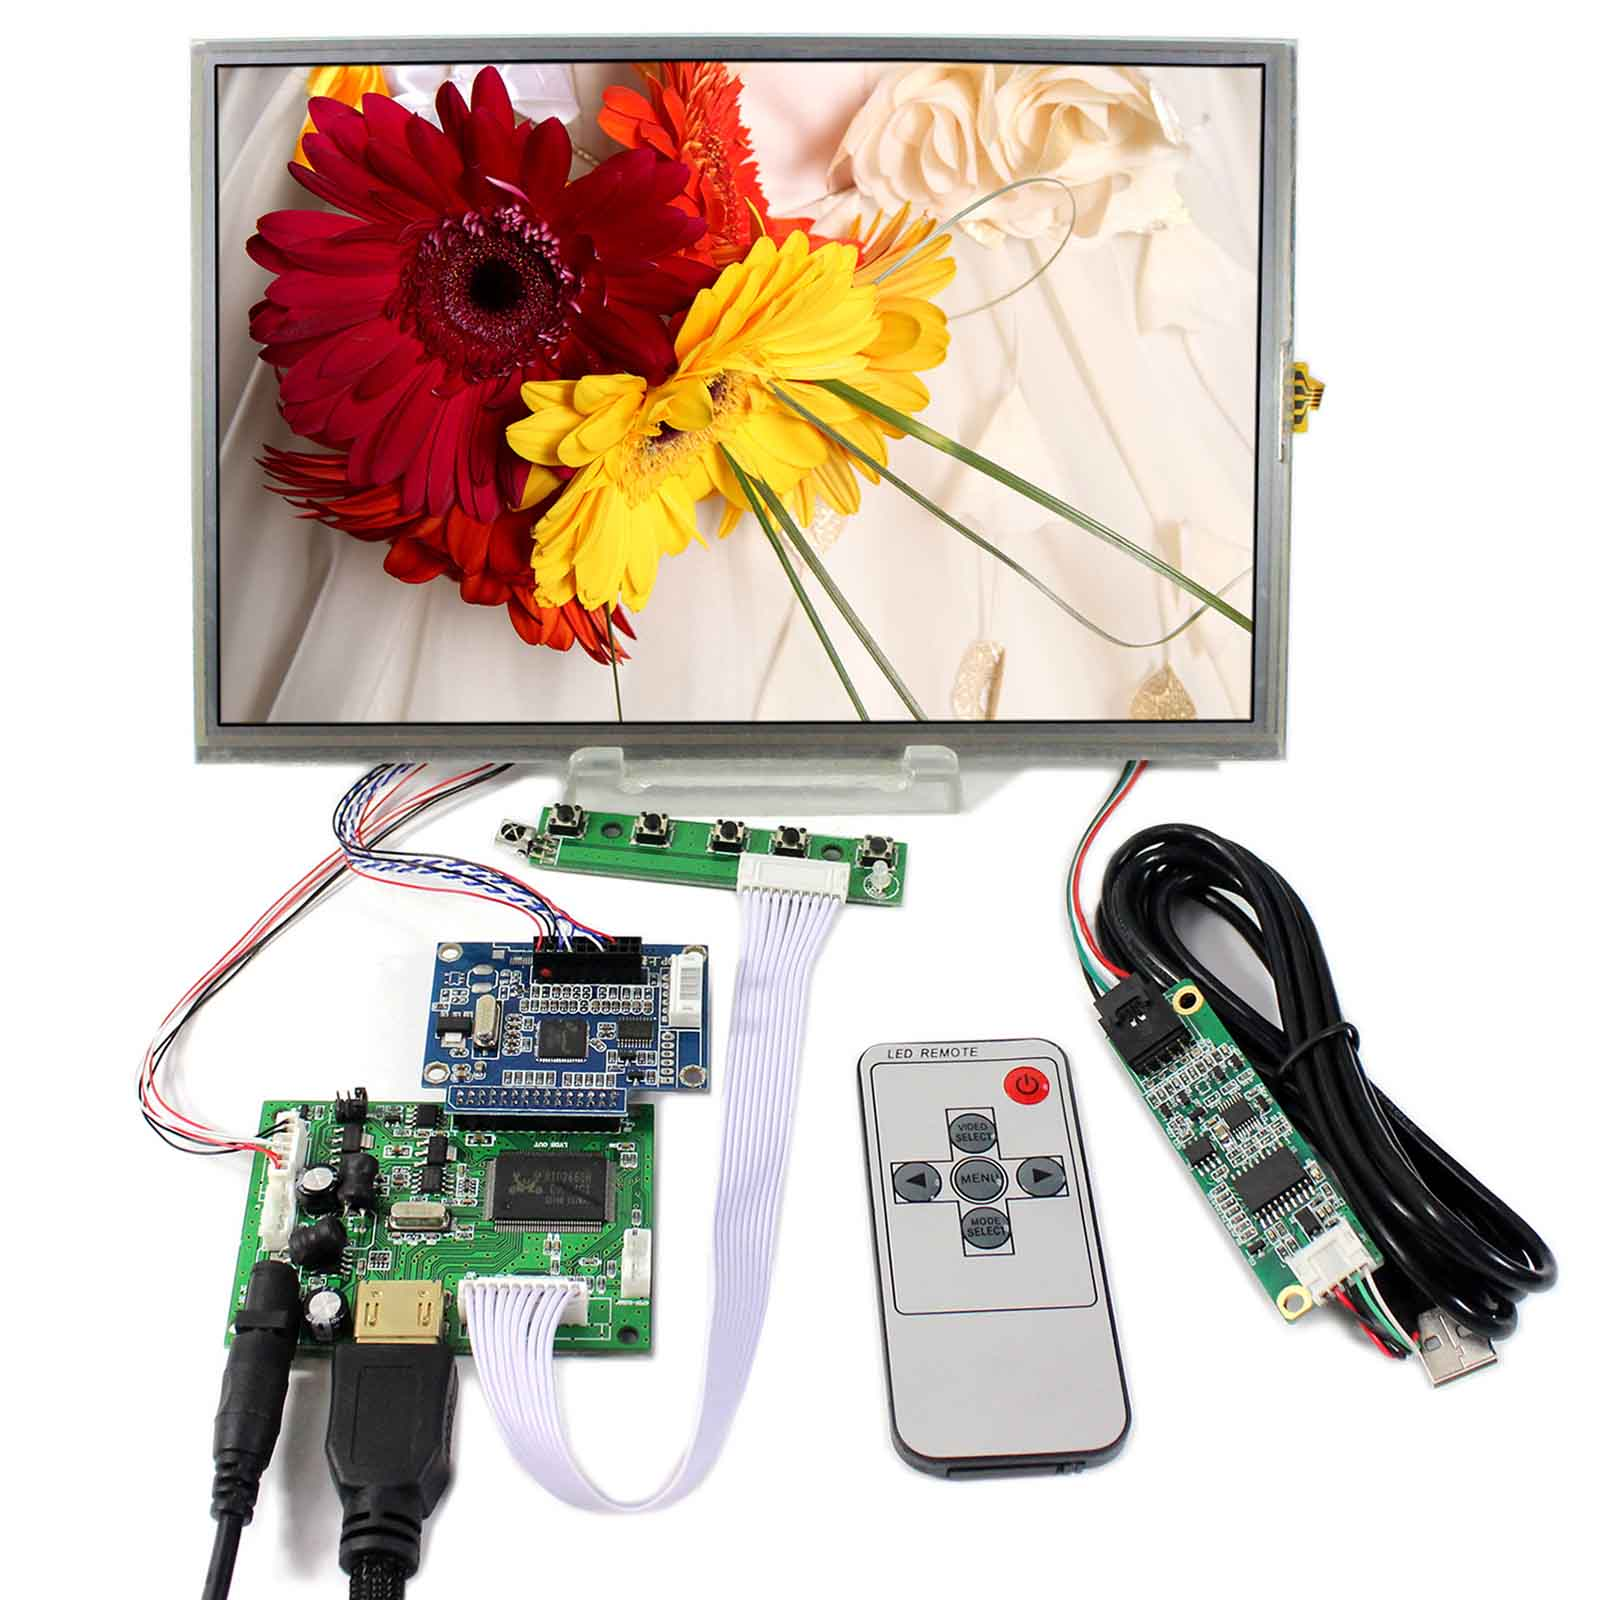 HDMI+LCD Controller Board With 10.1inch 1920x1200 B101UAN01.A IPS Touch ScreenHDMI+LCD Controller Board With 10.1inch 1920x1200 B101UAN01.A IPS Touch Screen